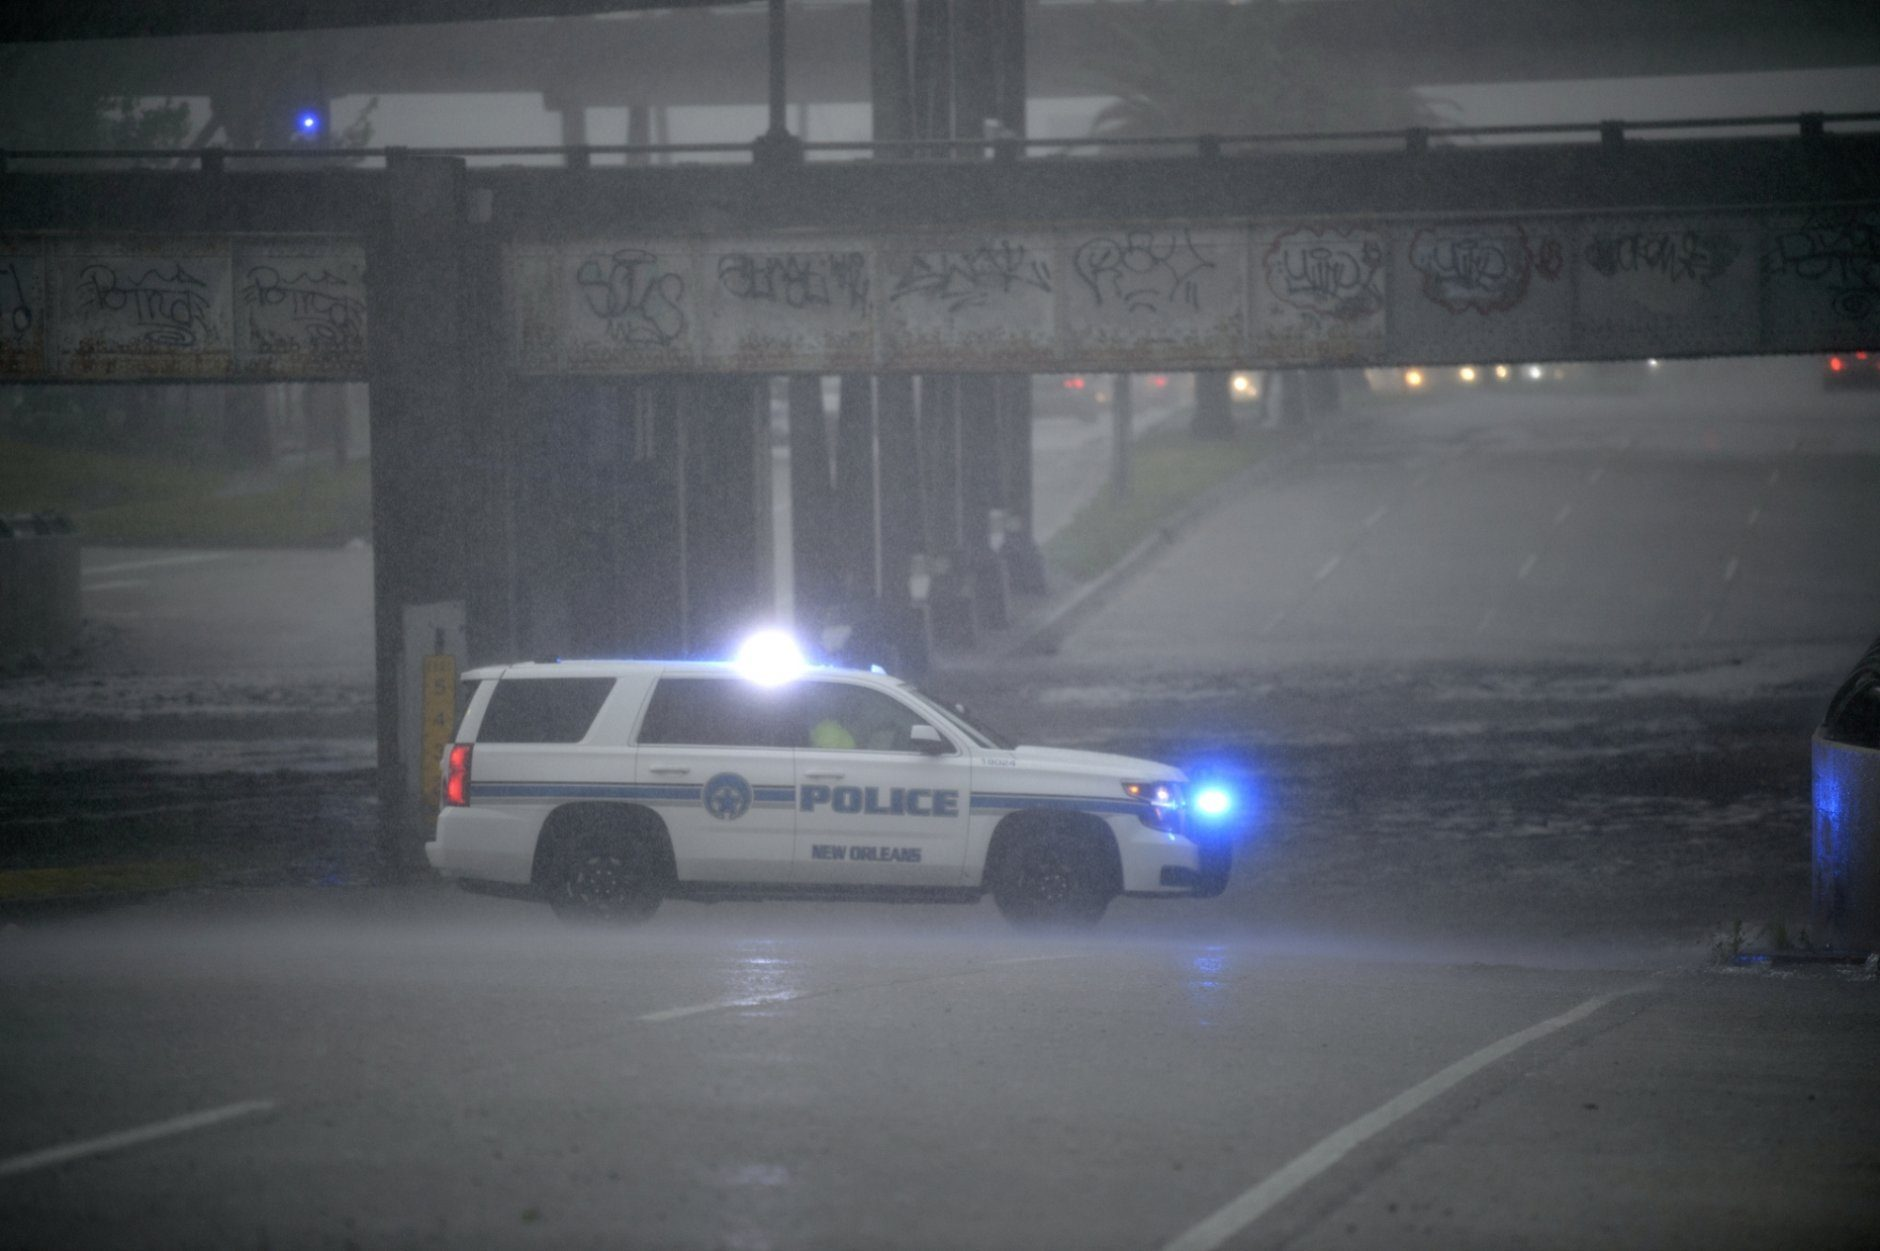 An NOPD cruiser blocks the underpass at S. Carrollton Ave. in New Orleans as severe thunderstorms caused street flooding, Wednesday, July 10, 2019.  (Max Becherer/The Advocate via AP)